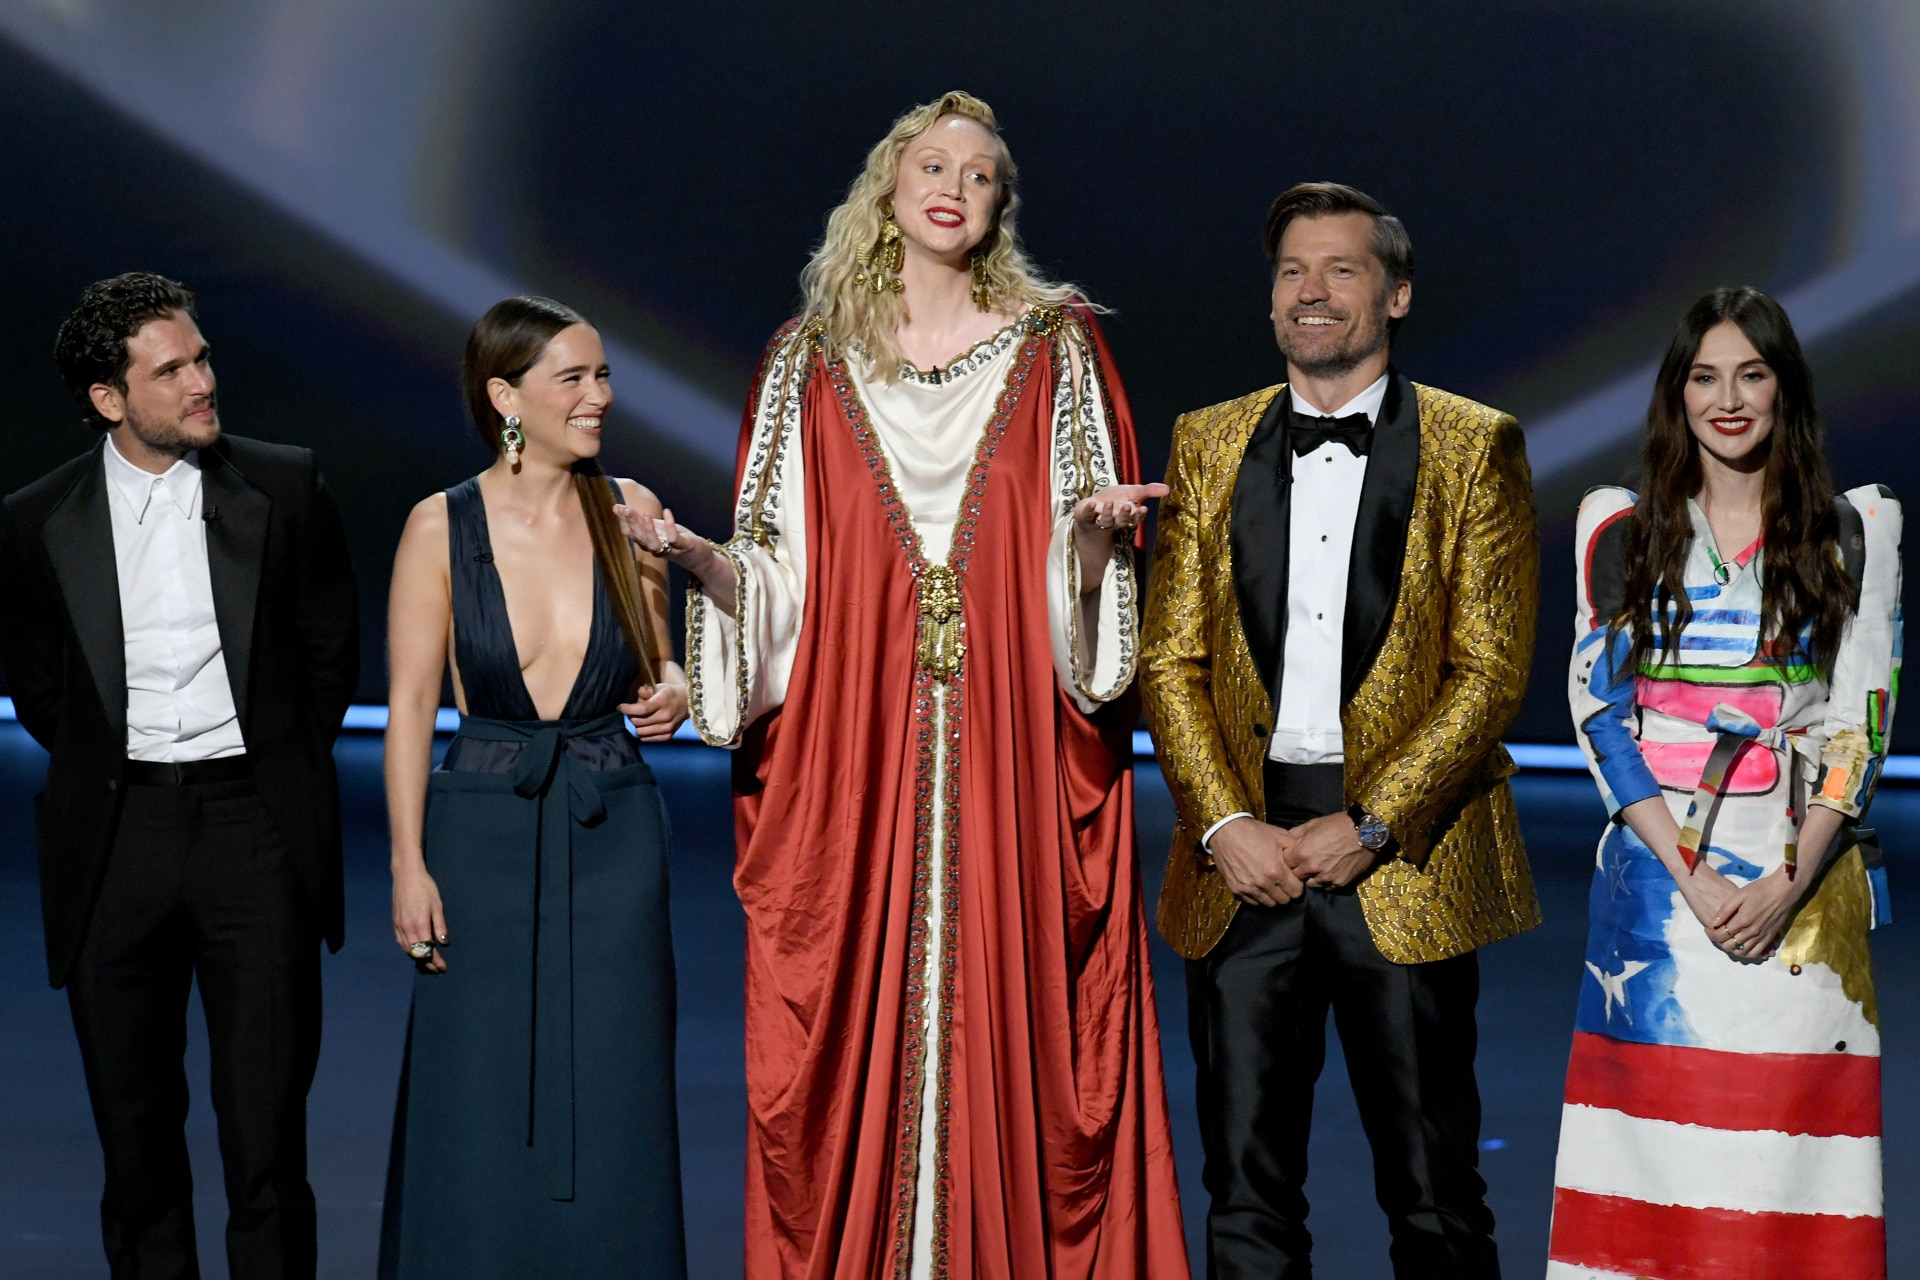 These are the best memes from the 2019 Emmy Awards